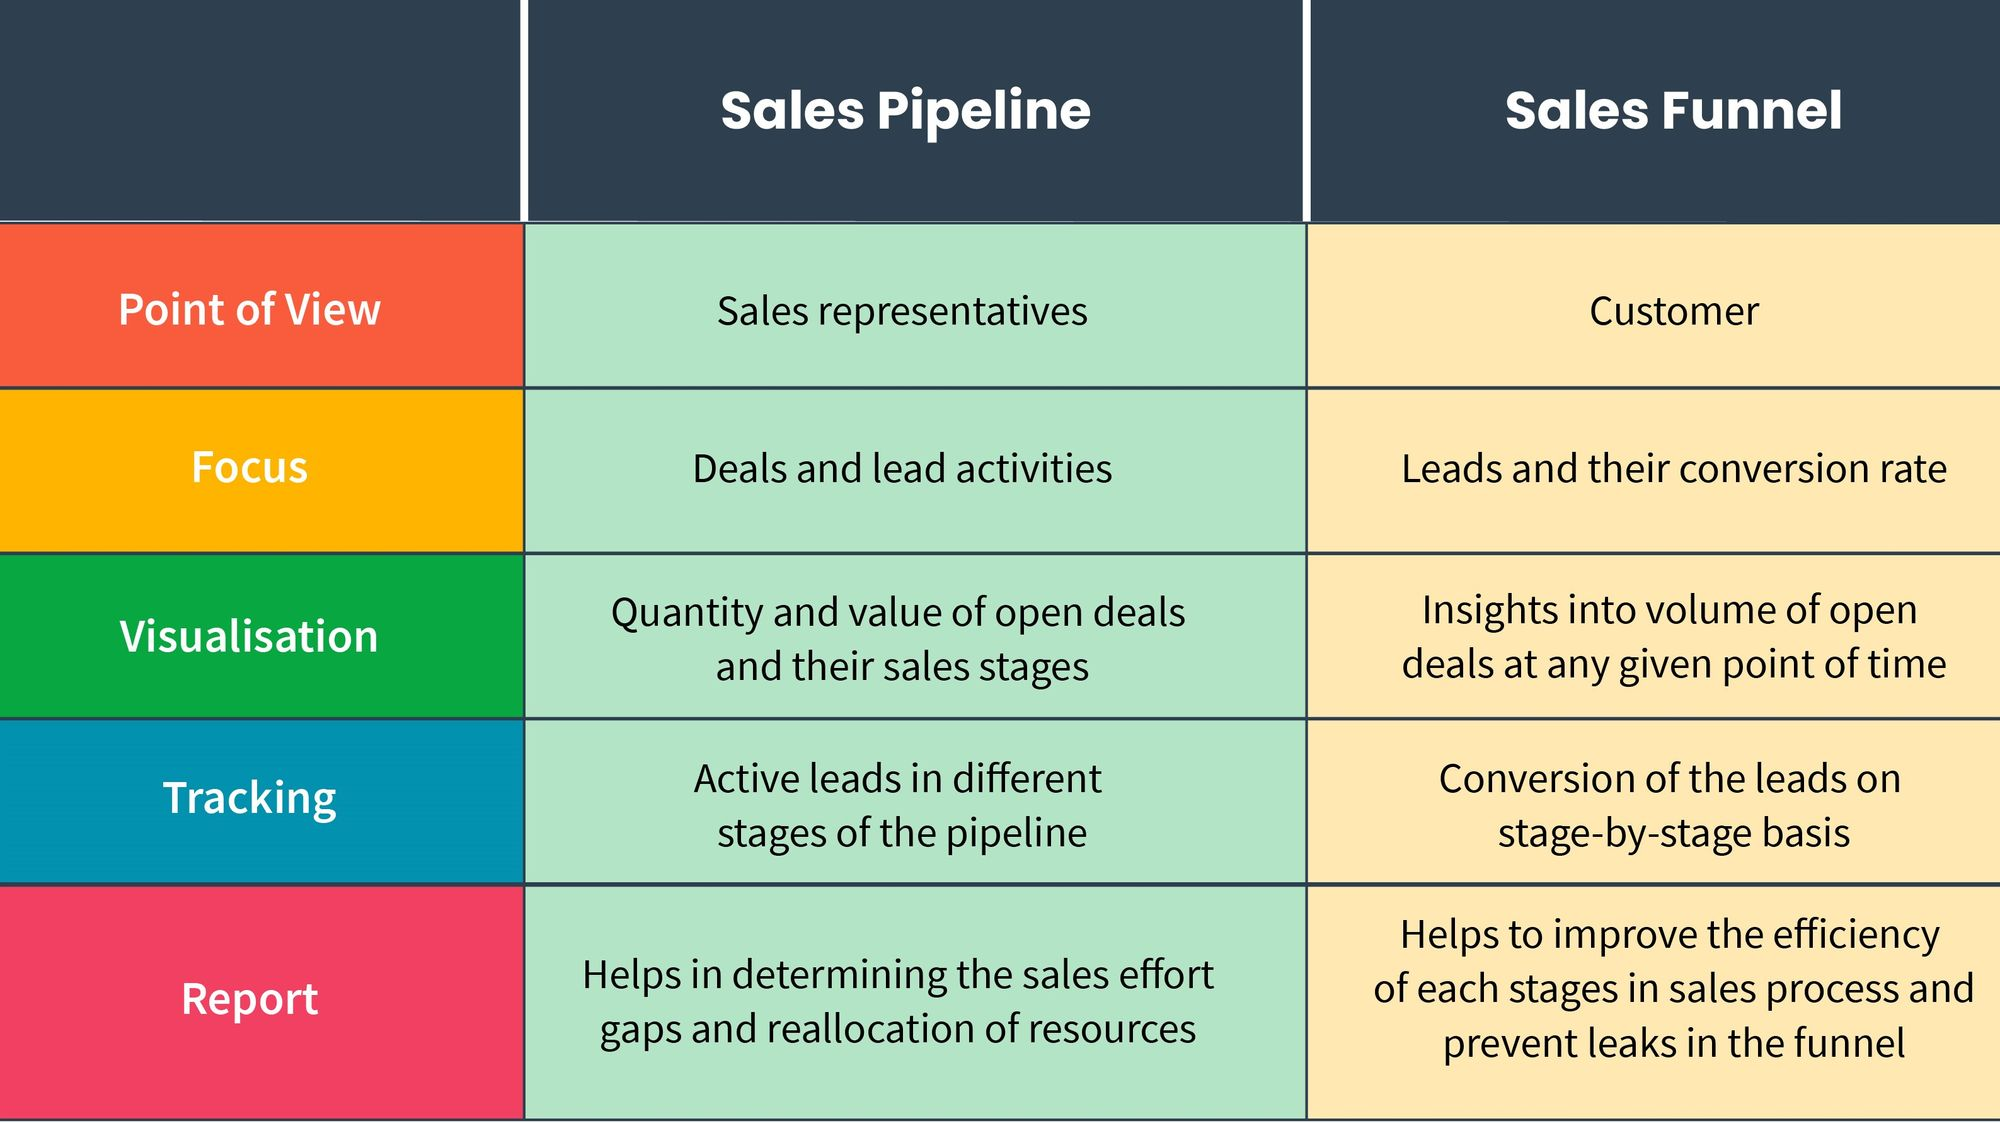 Comparison between sales pipeline and sales funnel